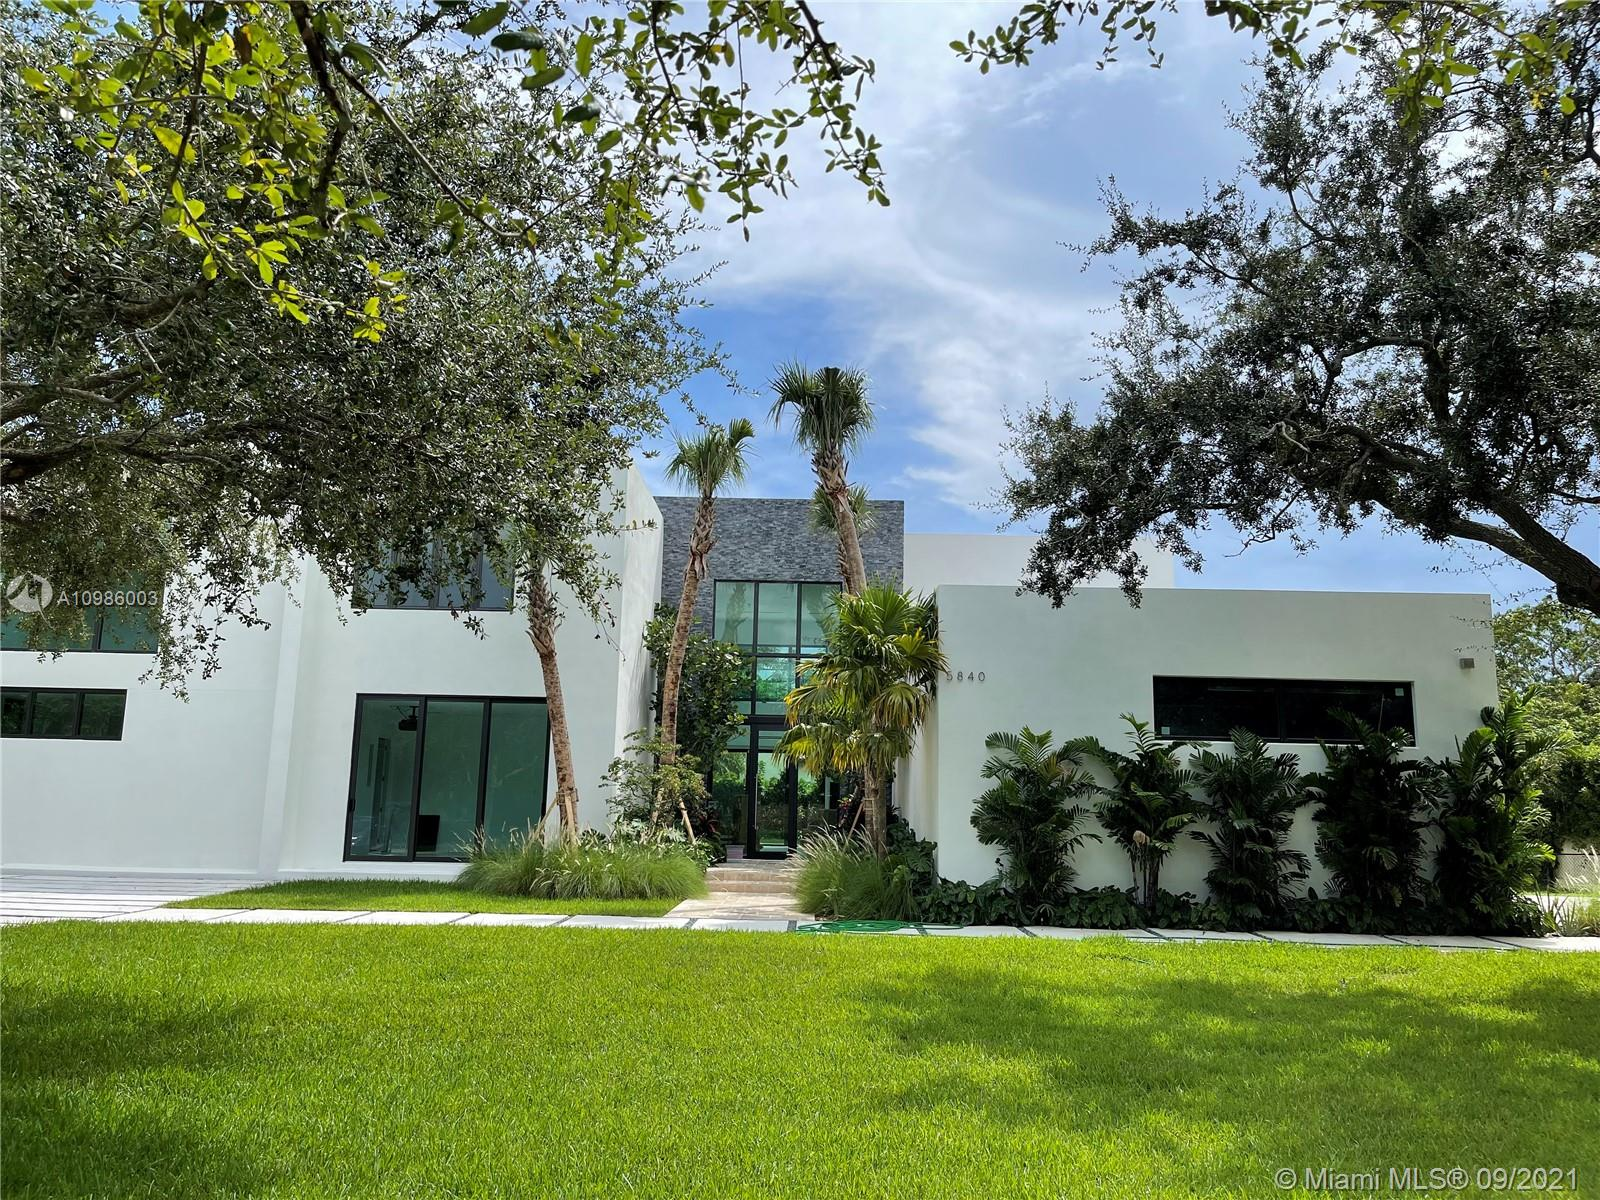 ~ SPECTACULAR CONTEMPORARY MODERN NEW CONSTRUCTION HOME ON QUIET STREET IN PREMIER PINECREST LOCATION ~ 6 BEDROOM / 6.5 BATHROOM WITH BONUS MEDIA ROOM & OFFICE ~ STUNNING ENTRY W/ ULTRA HIGH CEILINGS PROMOTES AN ABUNDANCE OF NATURAL LIGHT WHILE OVERLOOKING POOL & BACKYARD ~ OPEN KITCHEN W/ QUARTZ COUNTERTOPS, SUBZERO & VIKING APPLIANCES INCLUDING GAS COOKTOP OVEN ~ ITALIAN PORCELAIN FLOORS DOWNSTAIRS & WOOD FLOORS UPSTAIRS ~ GORGEOUS UPSTAIRS MASTER SUITE & BATH W/ HIS & HERS WALK-IN CLOSETS ~ UPSTAIRS INCLUDES 3 ADDITIONAL EN SUITE BEDROOMS &  TV AREA ~ CGI IMPACT GLASS WINDOWS & DOORS  ~ AMAZING OVERSIZED POOL ~ 2 COVERED TERRACES PERFECT FOR OUTDOOR ENTERTAINING ~ TOP NOTCH PUBLIC & PRIVATE SCHOOLS IN CLOSE PROXIMITY ~ EXPECTED COMPLETION JUNE 2021 ~